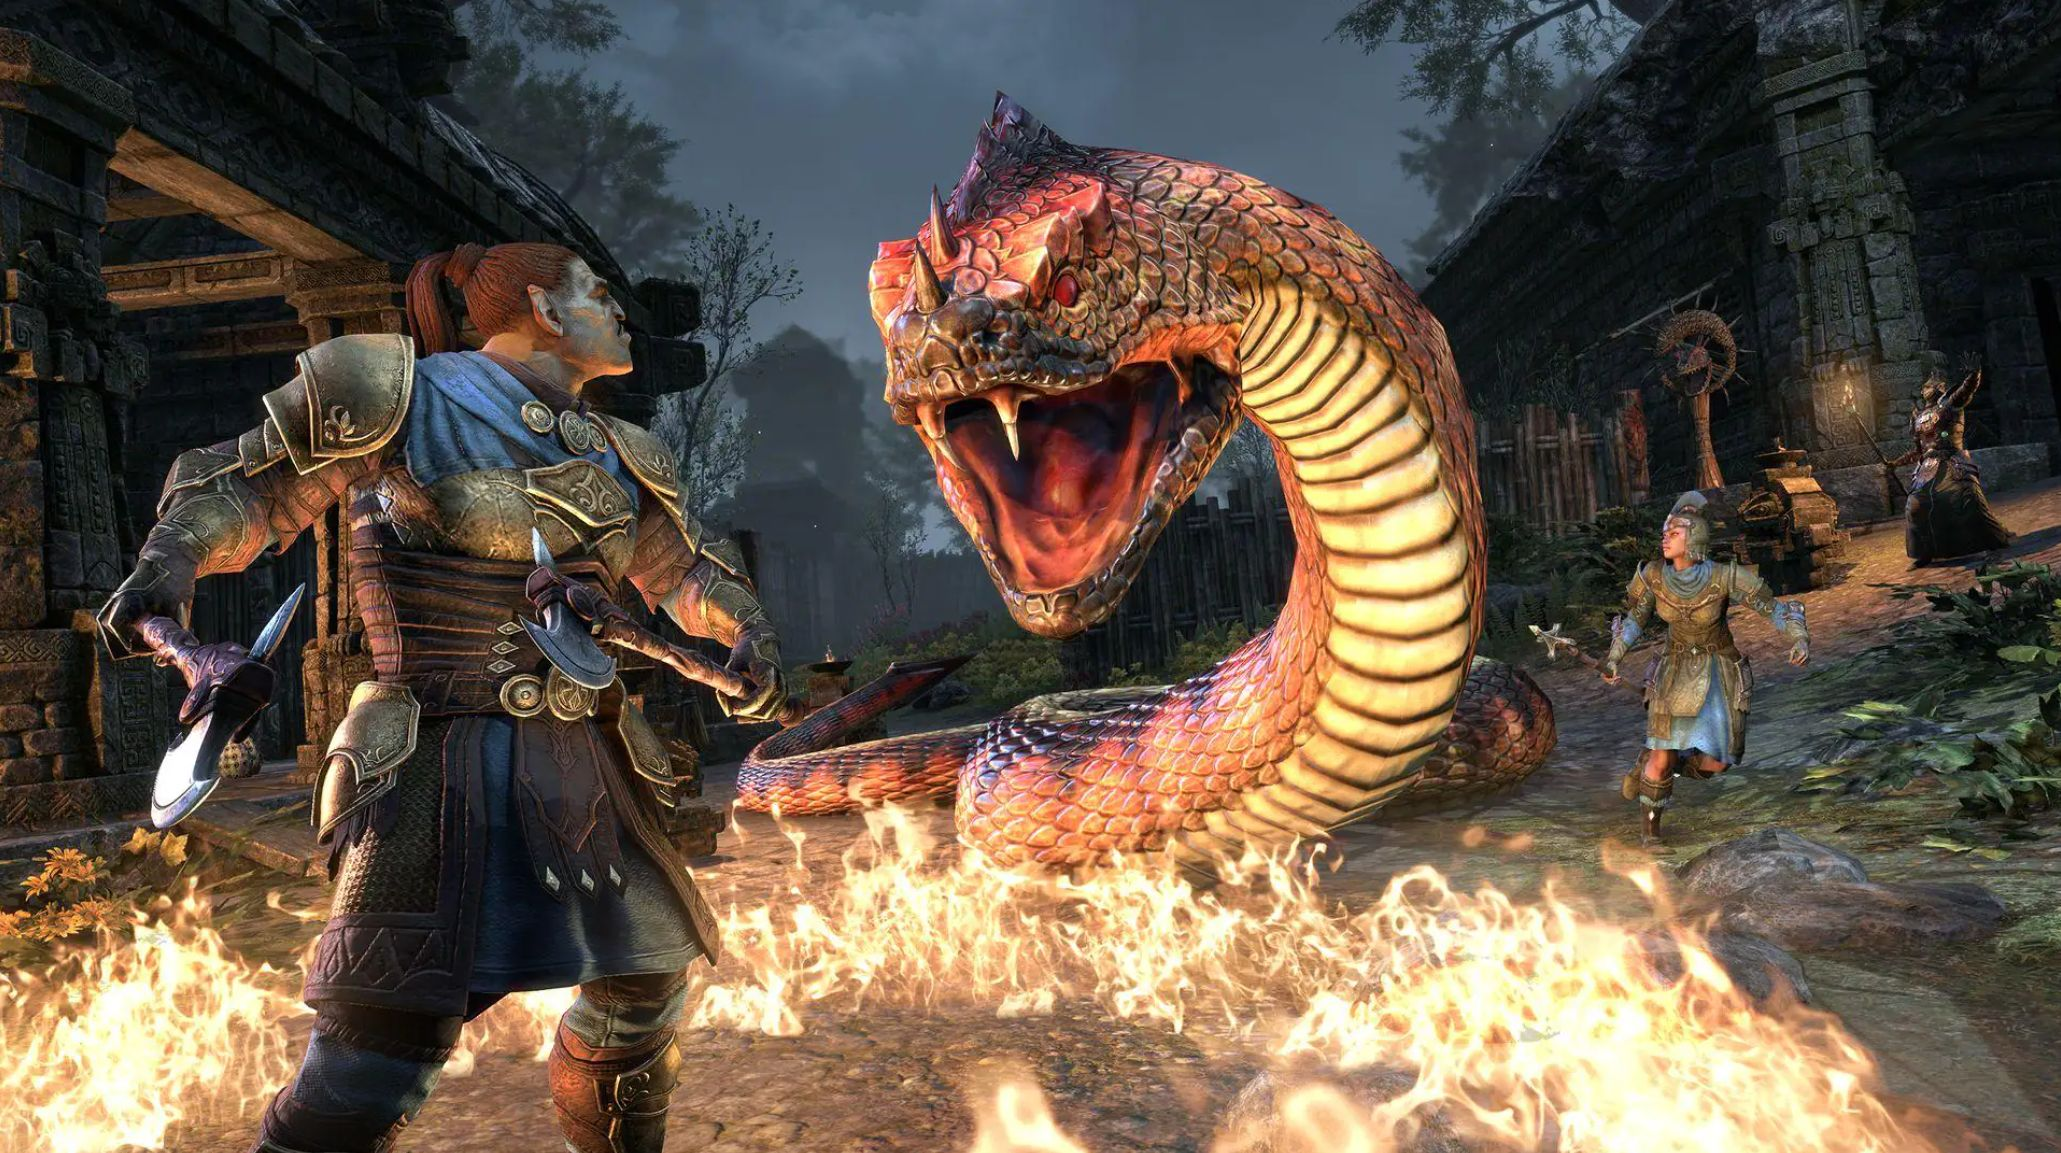 TESO: Blackwood is now also available for Playstation and Xbox